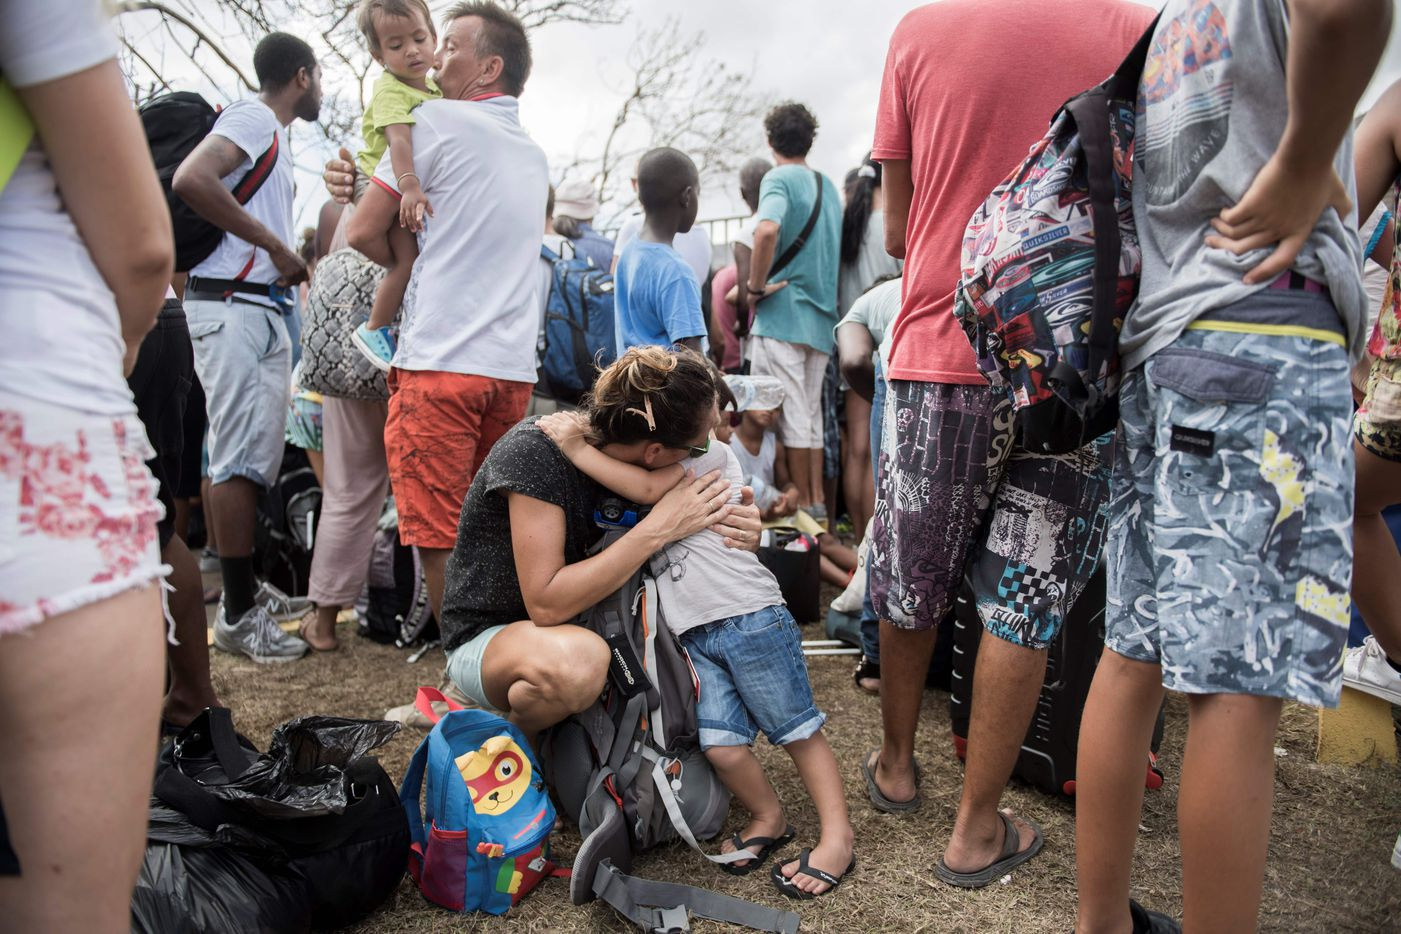 A mother comforts her child as they wait in front of Grand-Case Esperance airport entrance to leave Saint-Martin, on September 10, 2017 on the French Carribean island of Saint-Martin after it was devastated by Irma hurricane. People on the islands of Saint Martin and Saint Barts turn to the colossal task of rebuilding after Hurricane Irma laid waste to their infrastructure and shattered their lives.